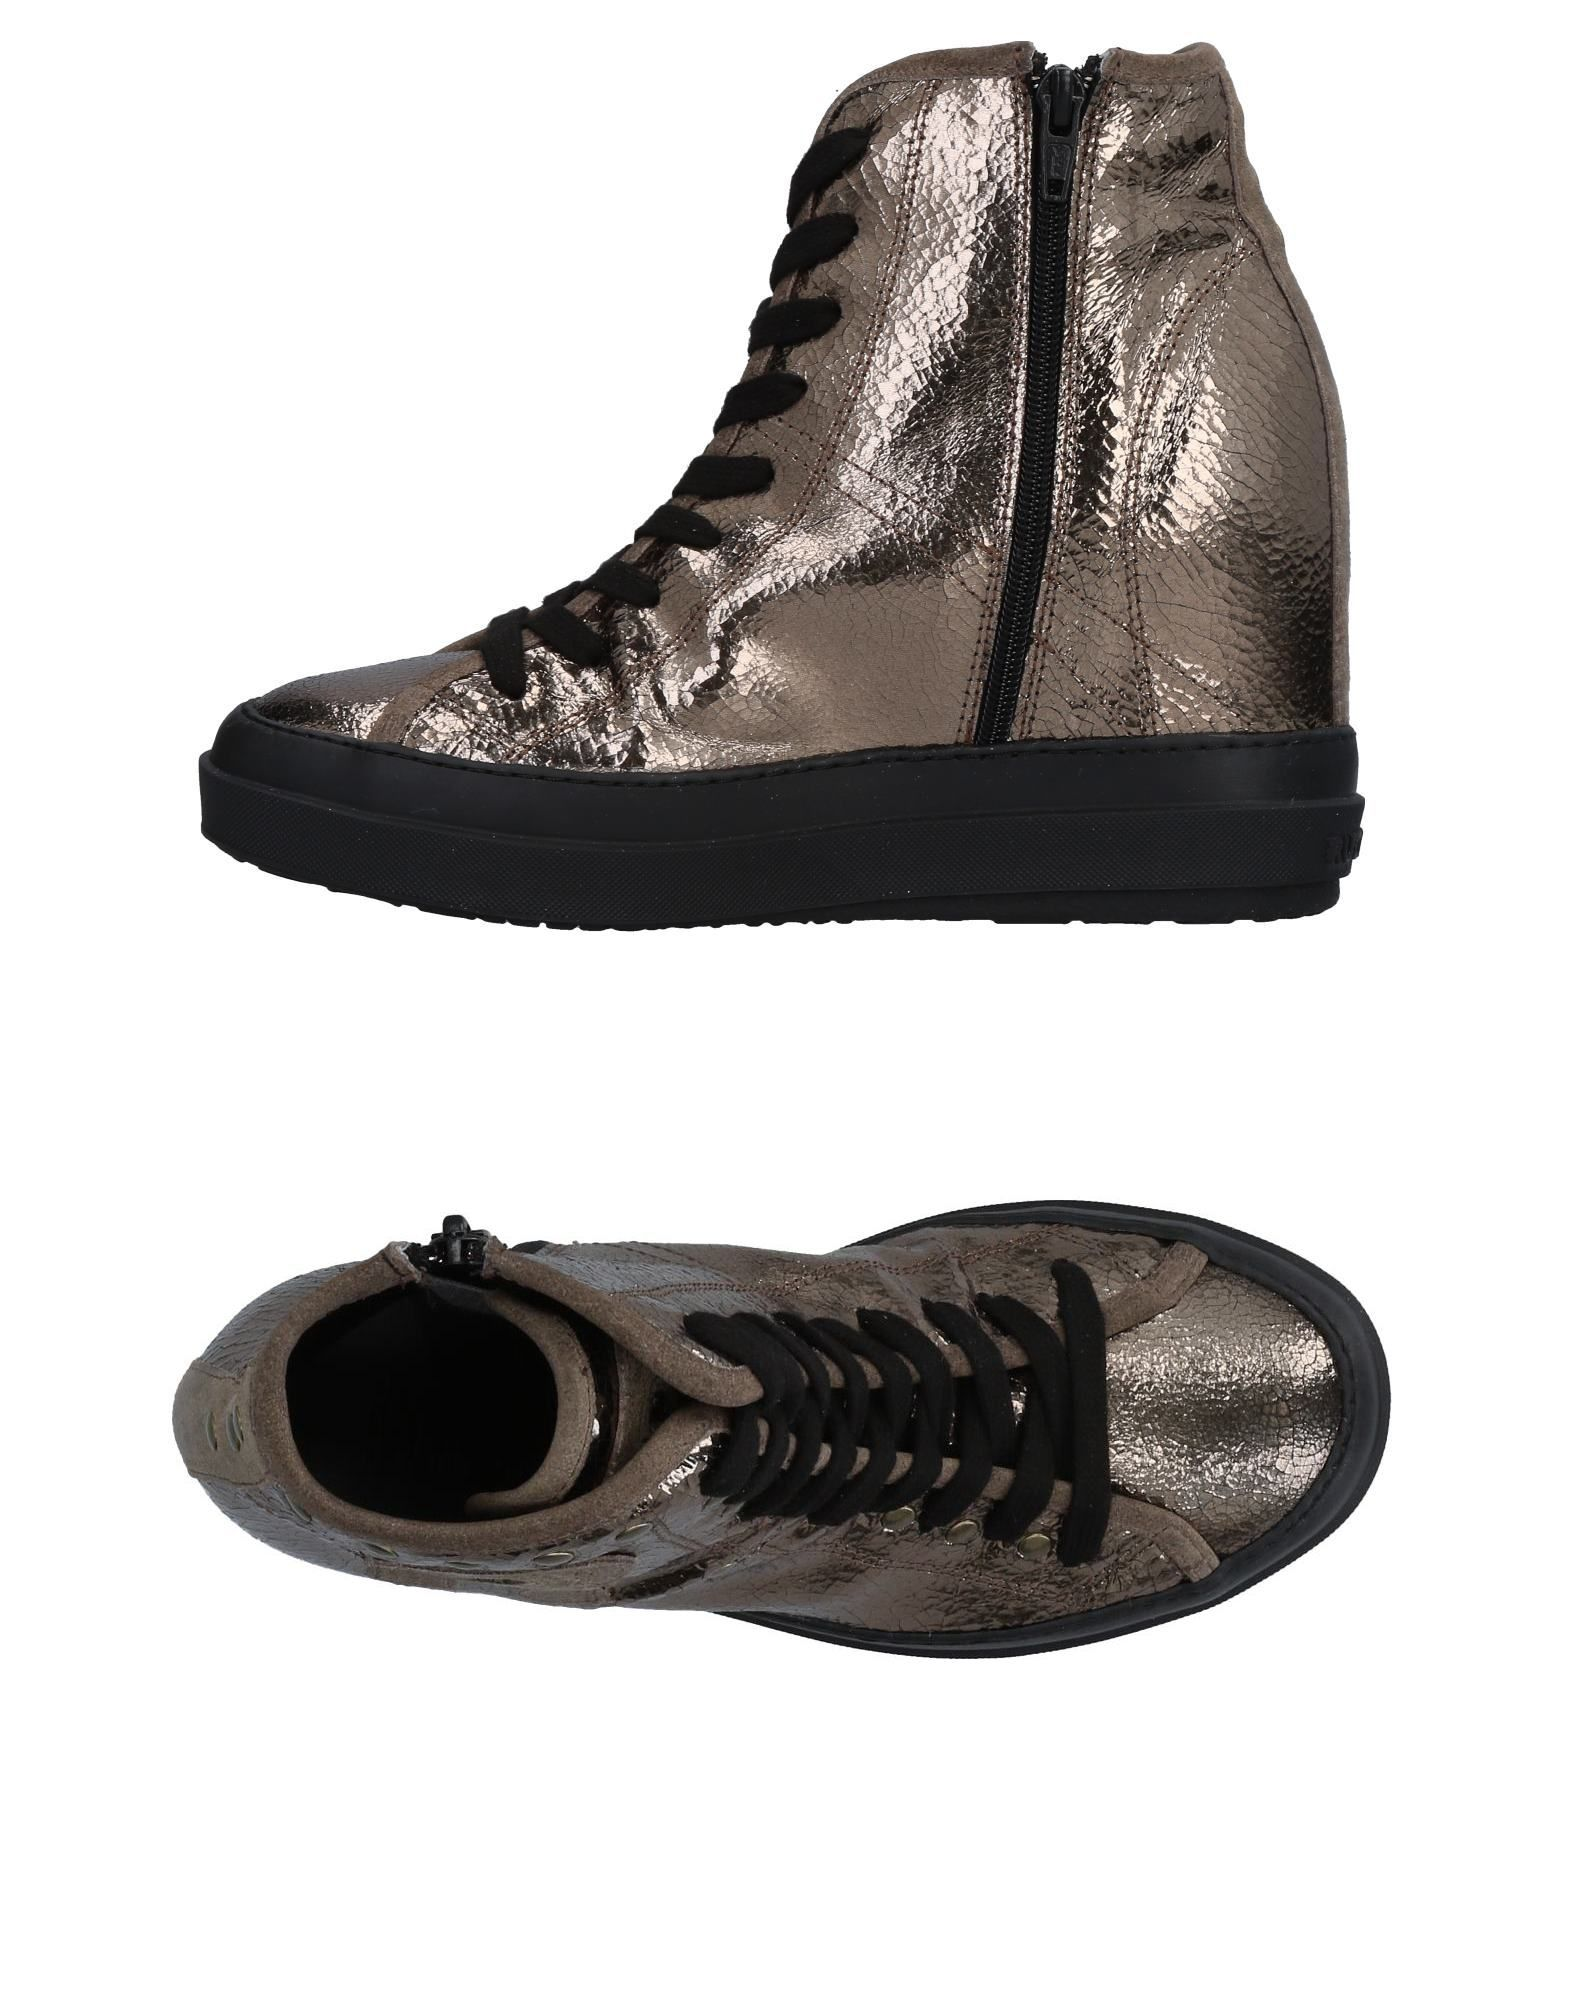 Ruco Line Sneakers - Women Women Women Ruco Line Sneakers online on  United Kingdom - 11476824CI 867c7d